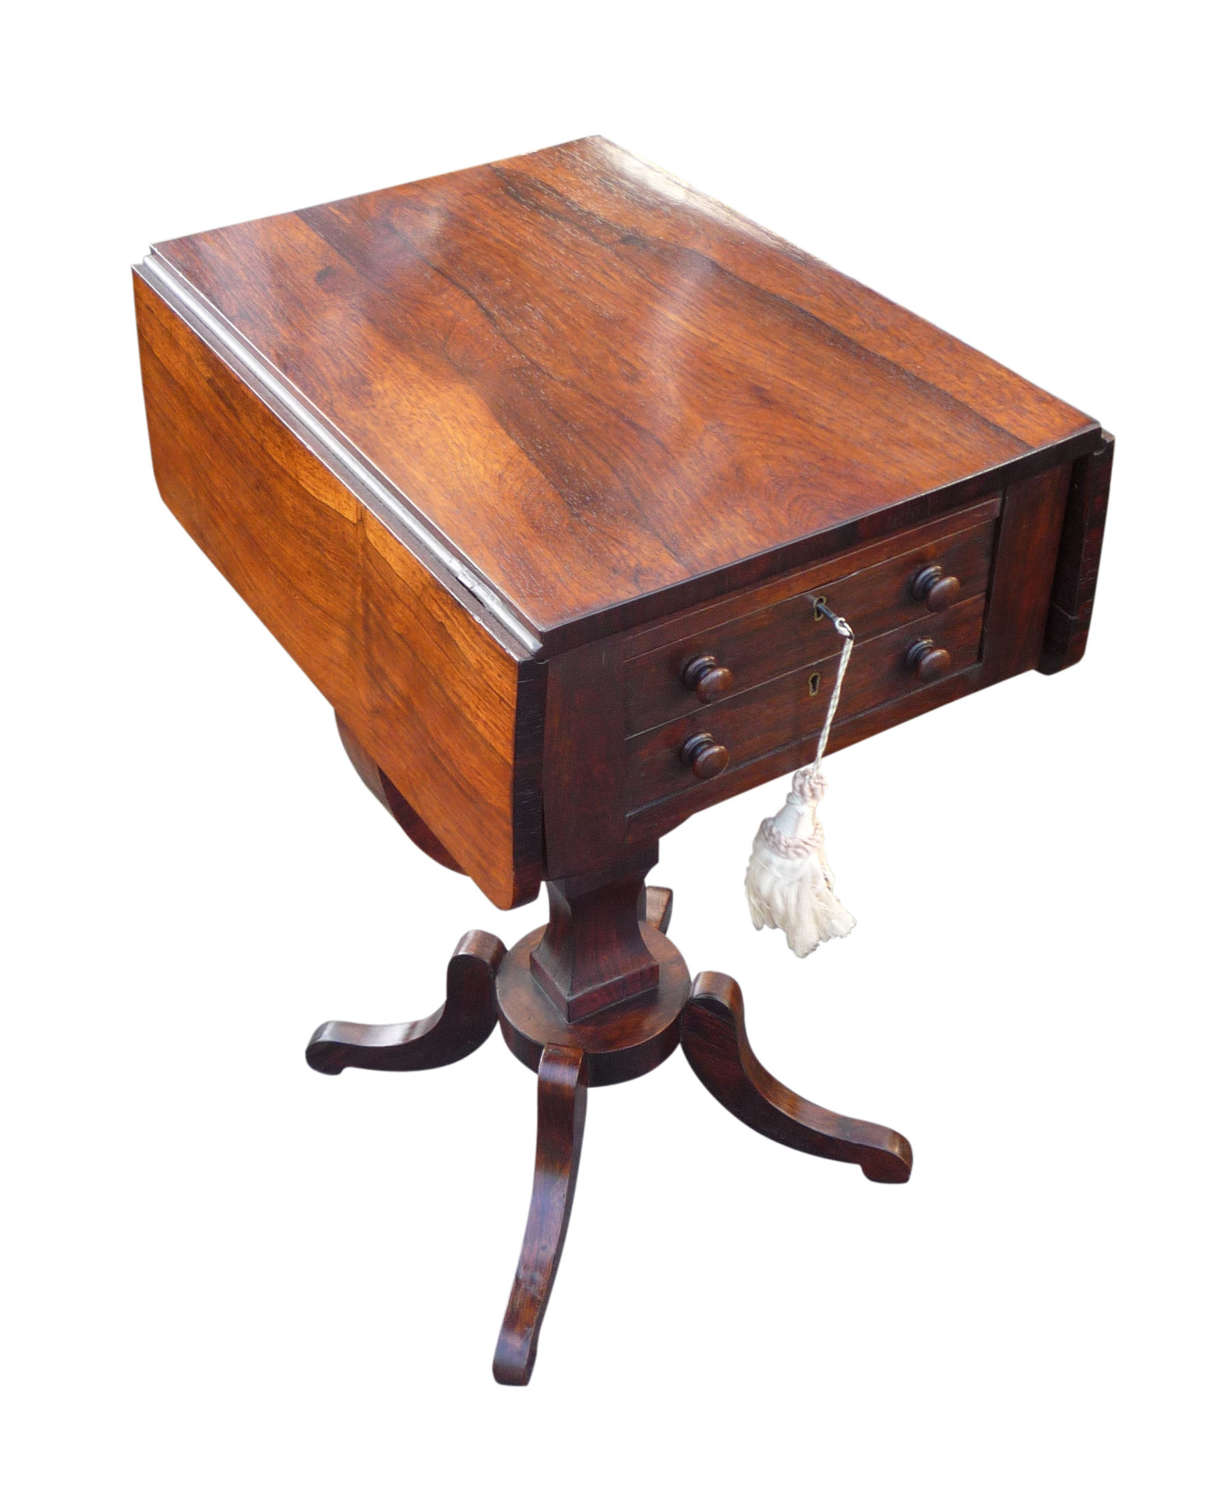 An attractive Regency rosewood sewing table circa 1820